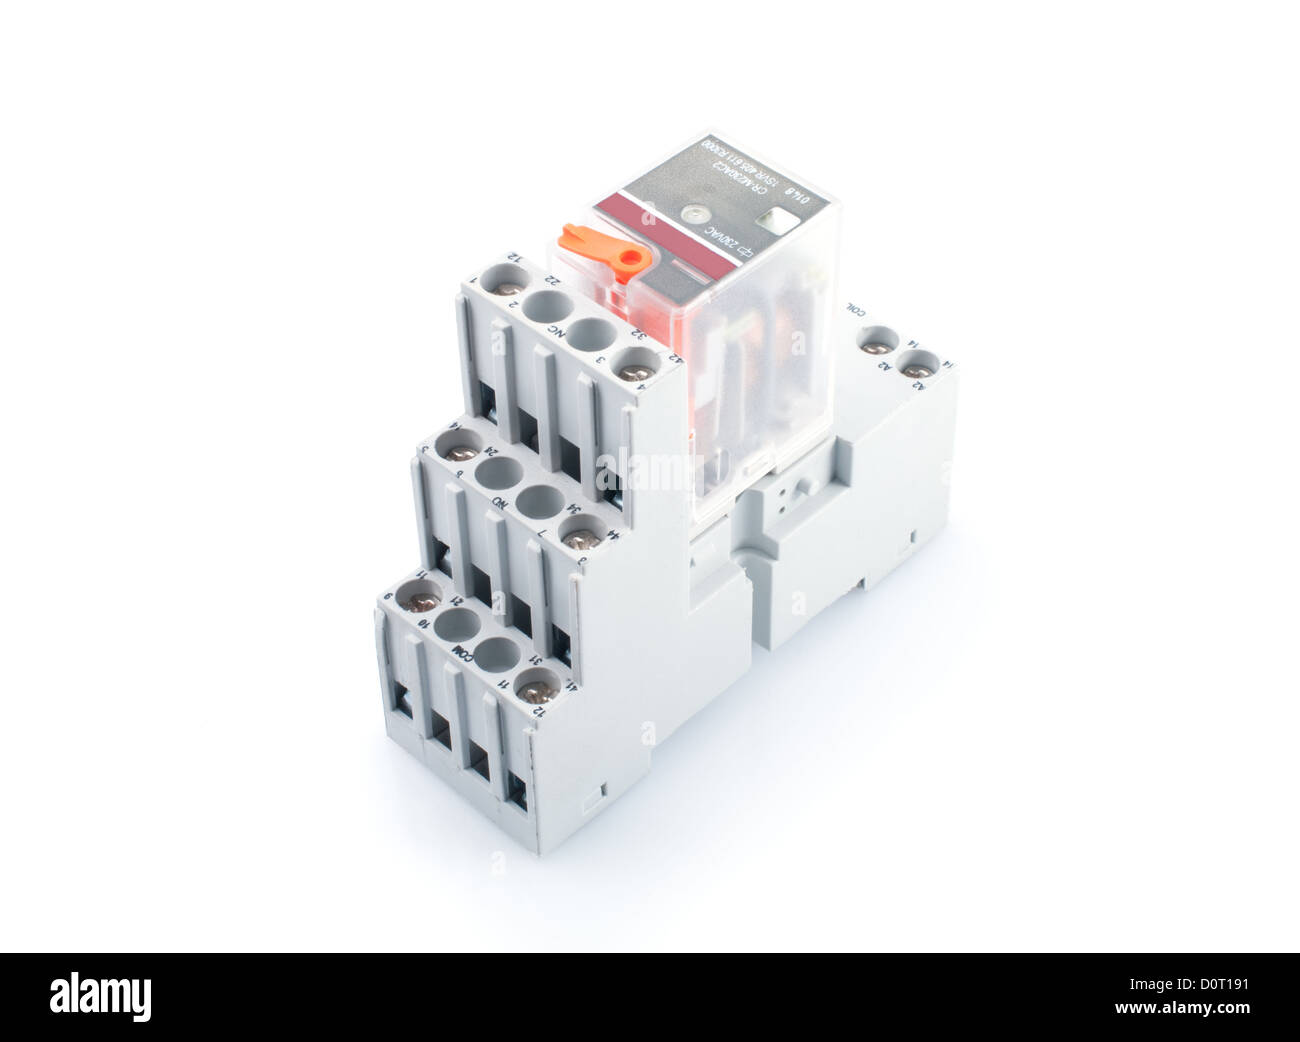 Electrical Relay Switch Stock Photos Circuit Electric Switching Isolated On White Image